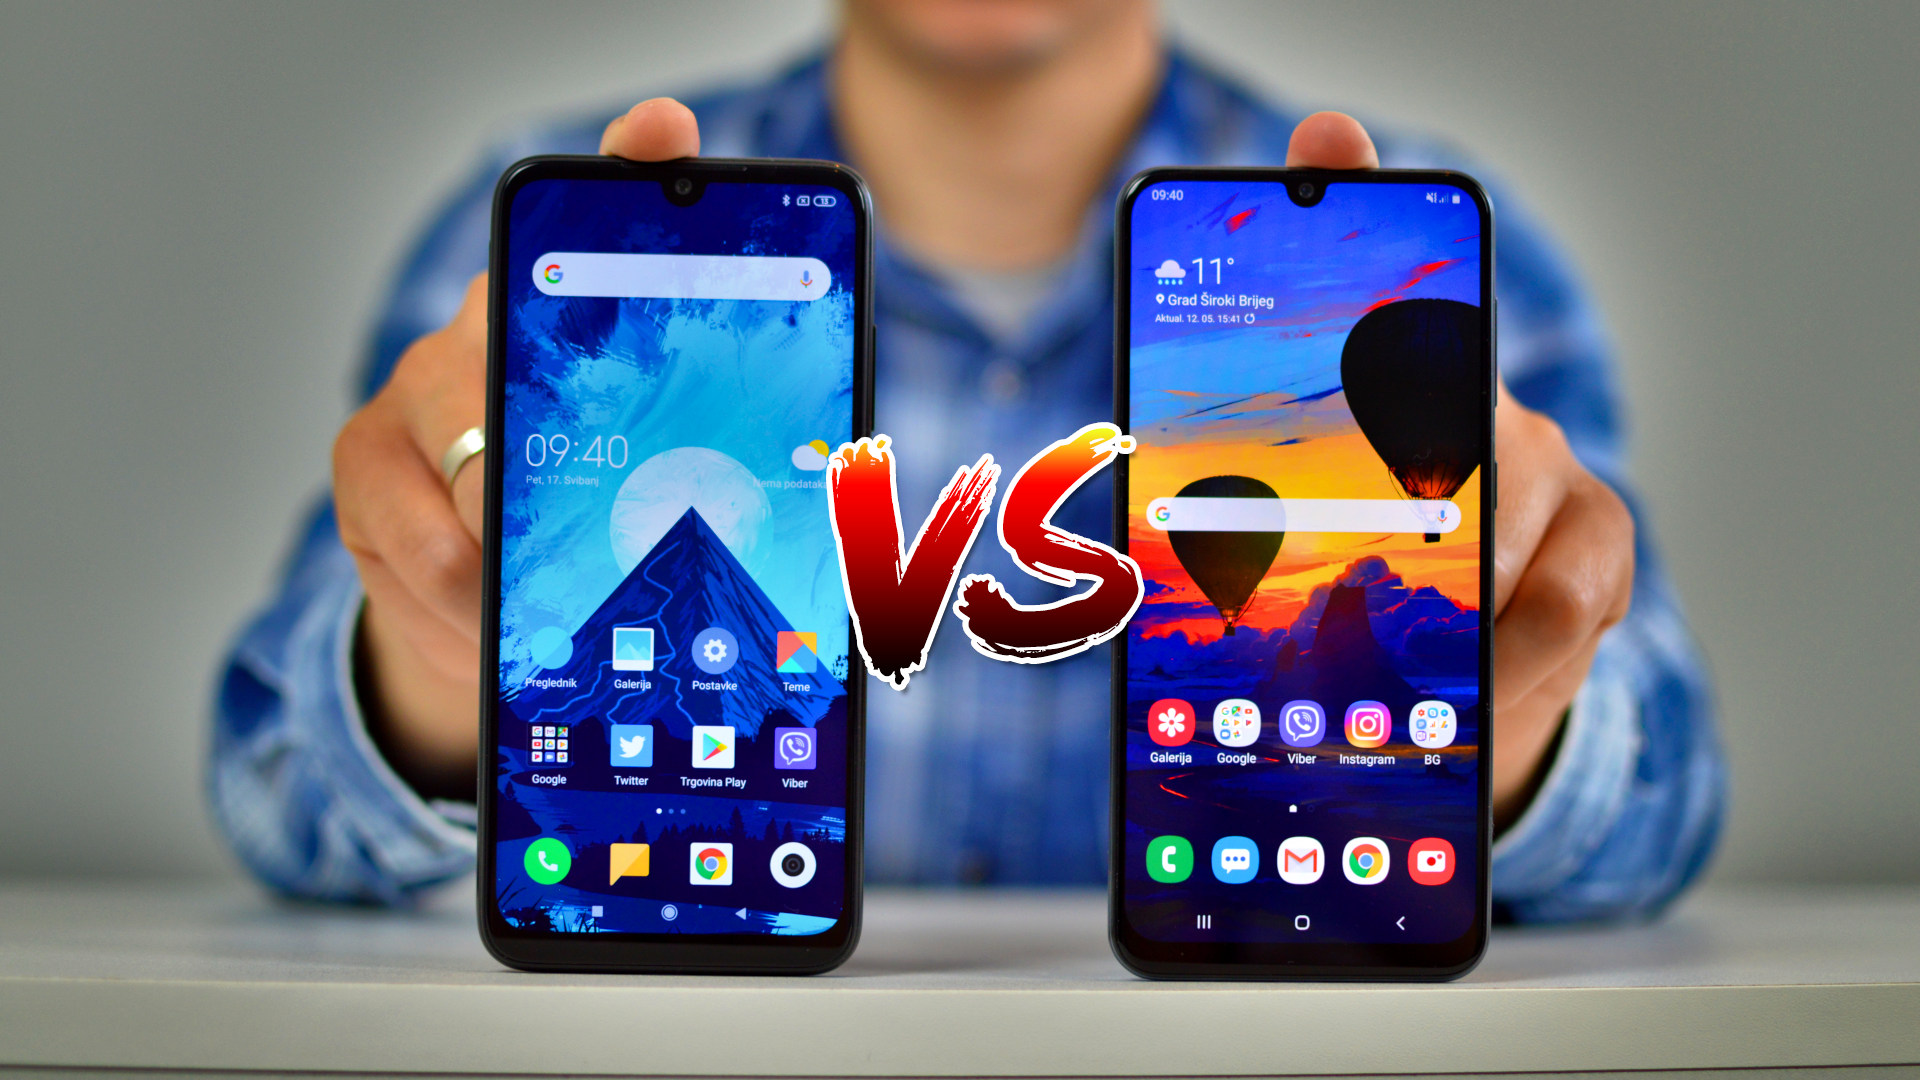 Usporedba Samsung Galaxy A50 vs Redmi Note 7